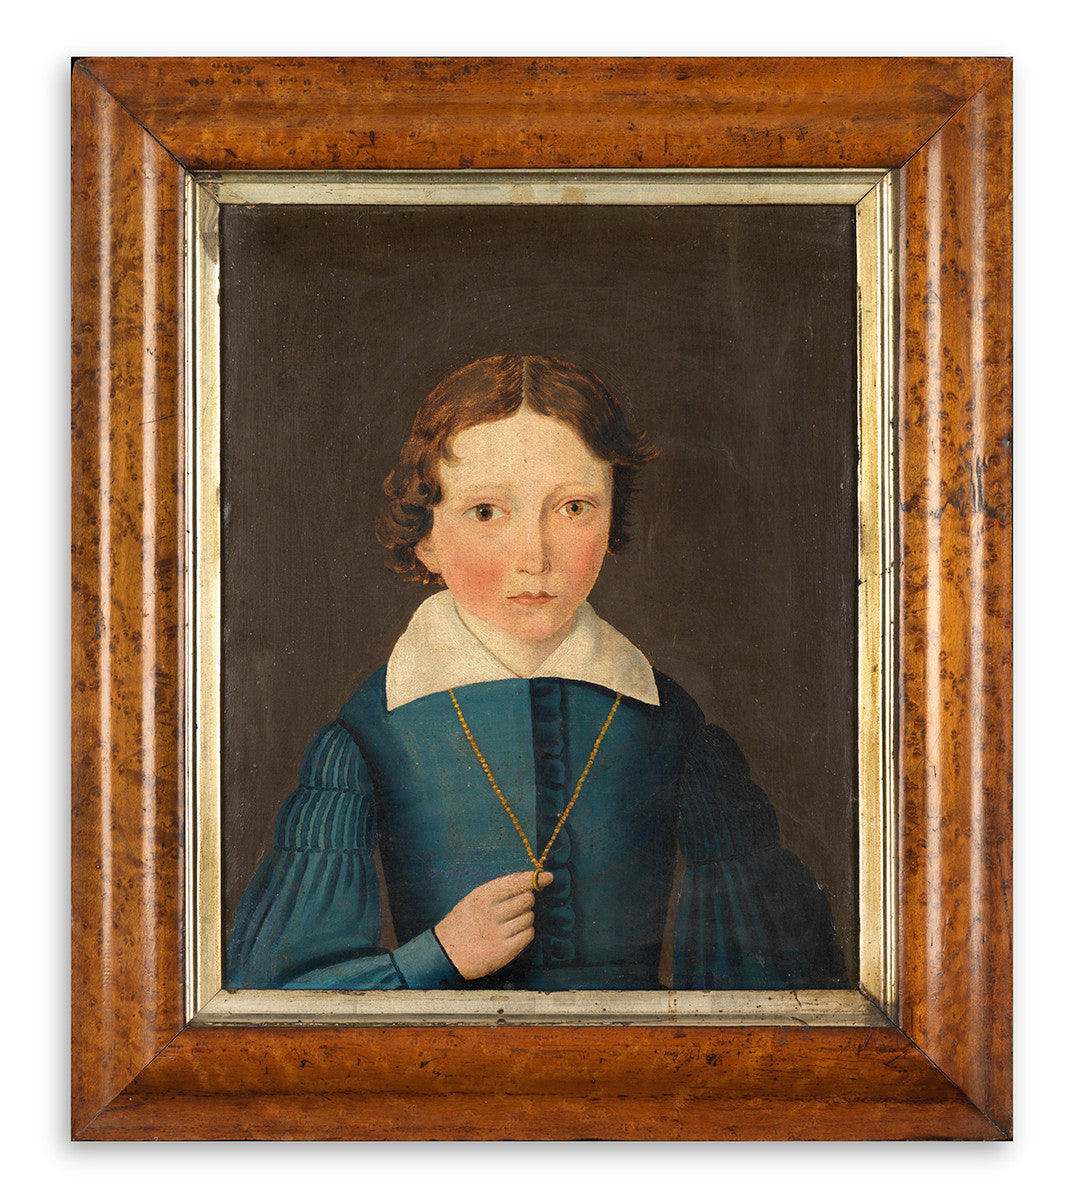 Primitive Portrait of a Young Man in Blue Coat and White Collar